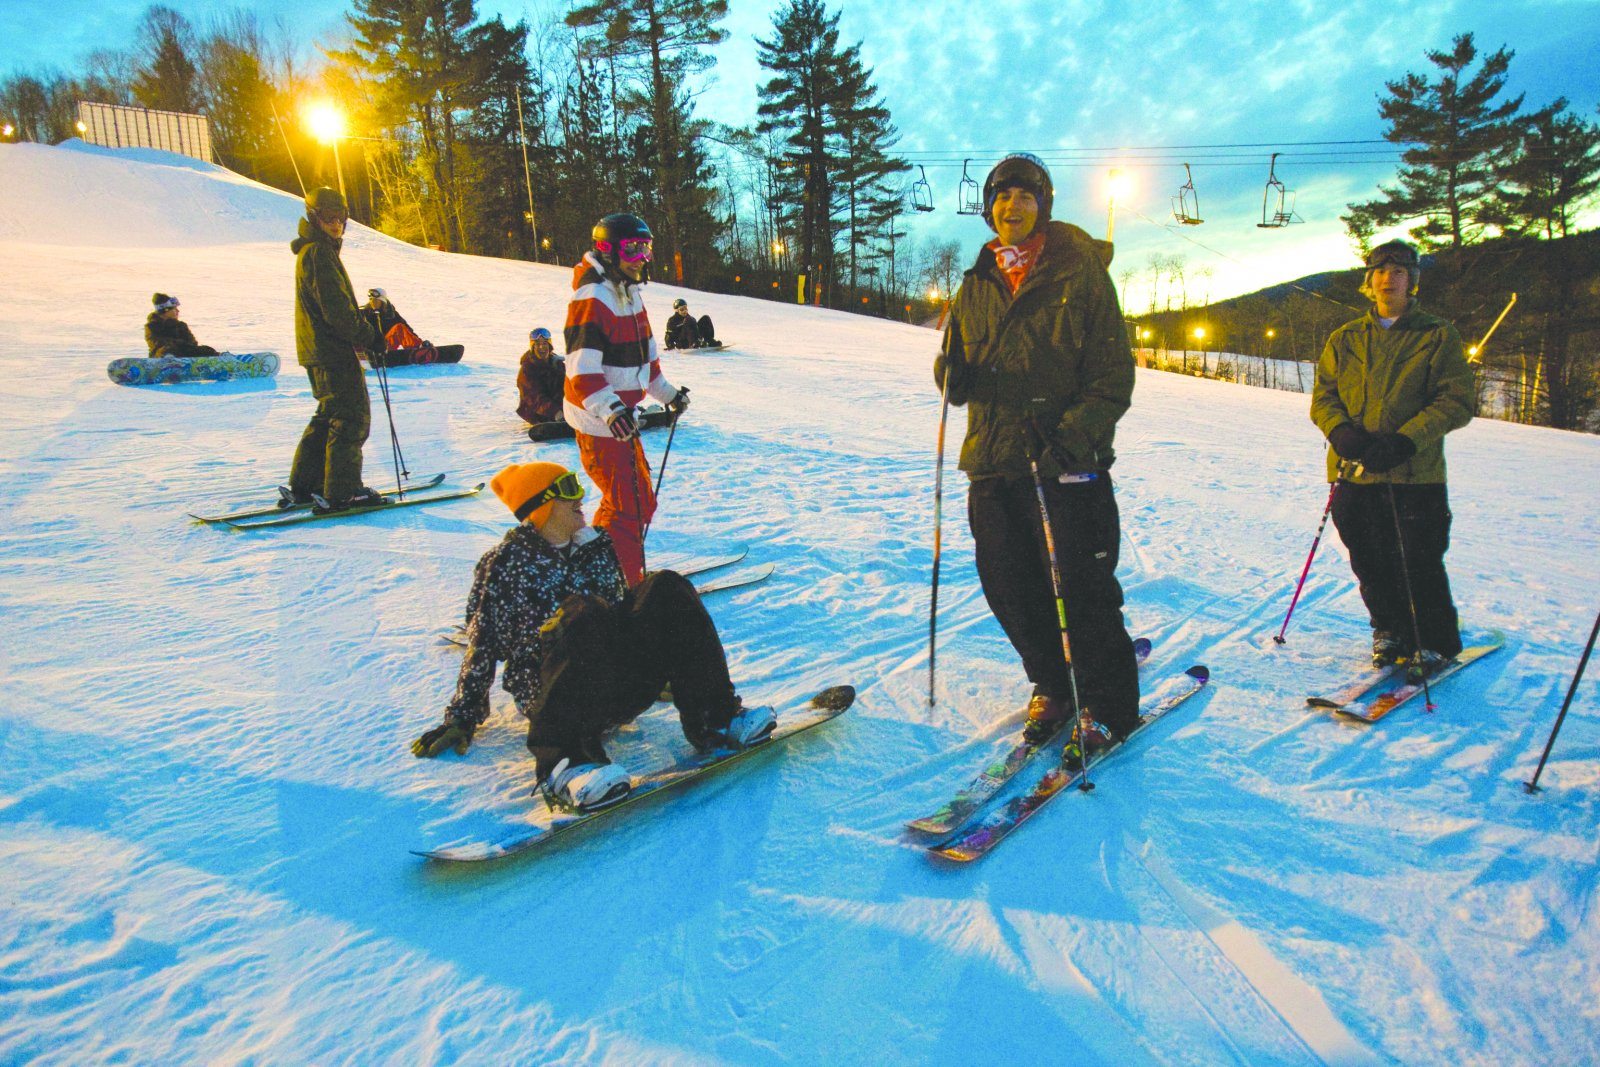 Skiers and boarders at Swain Resort